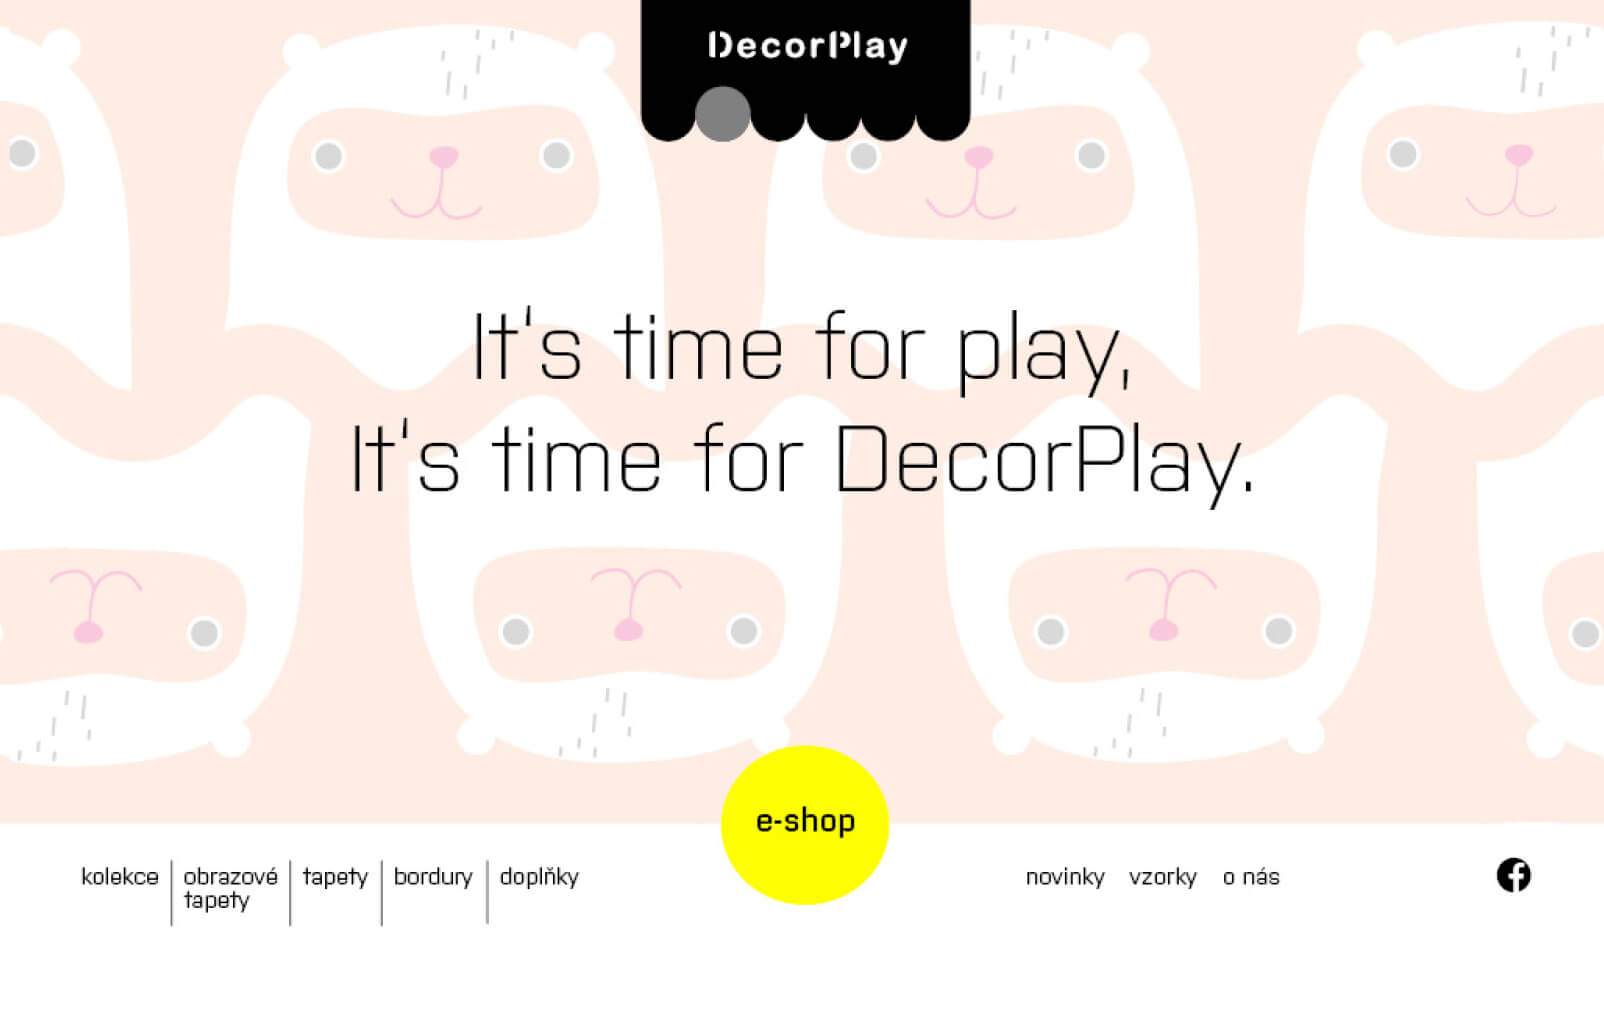 decorplay_3